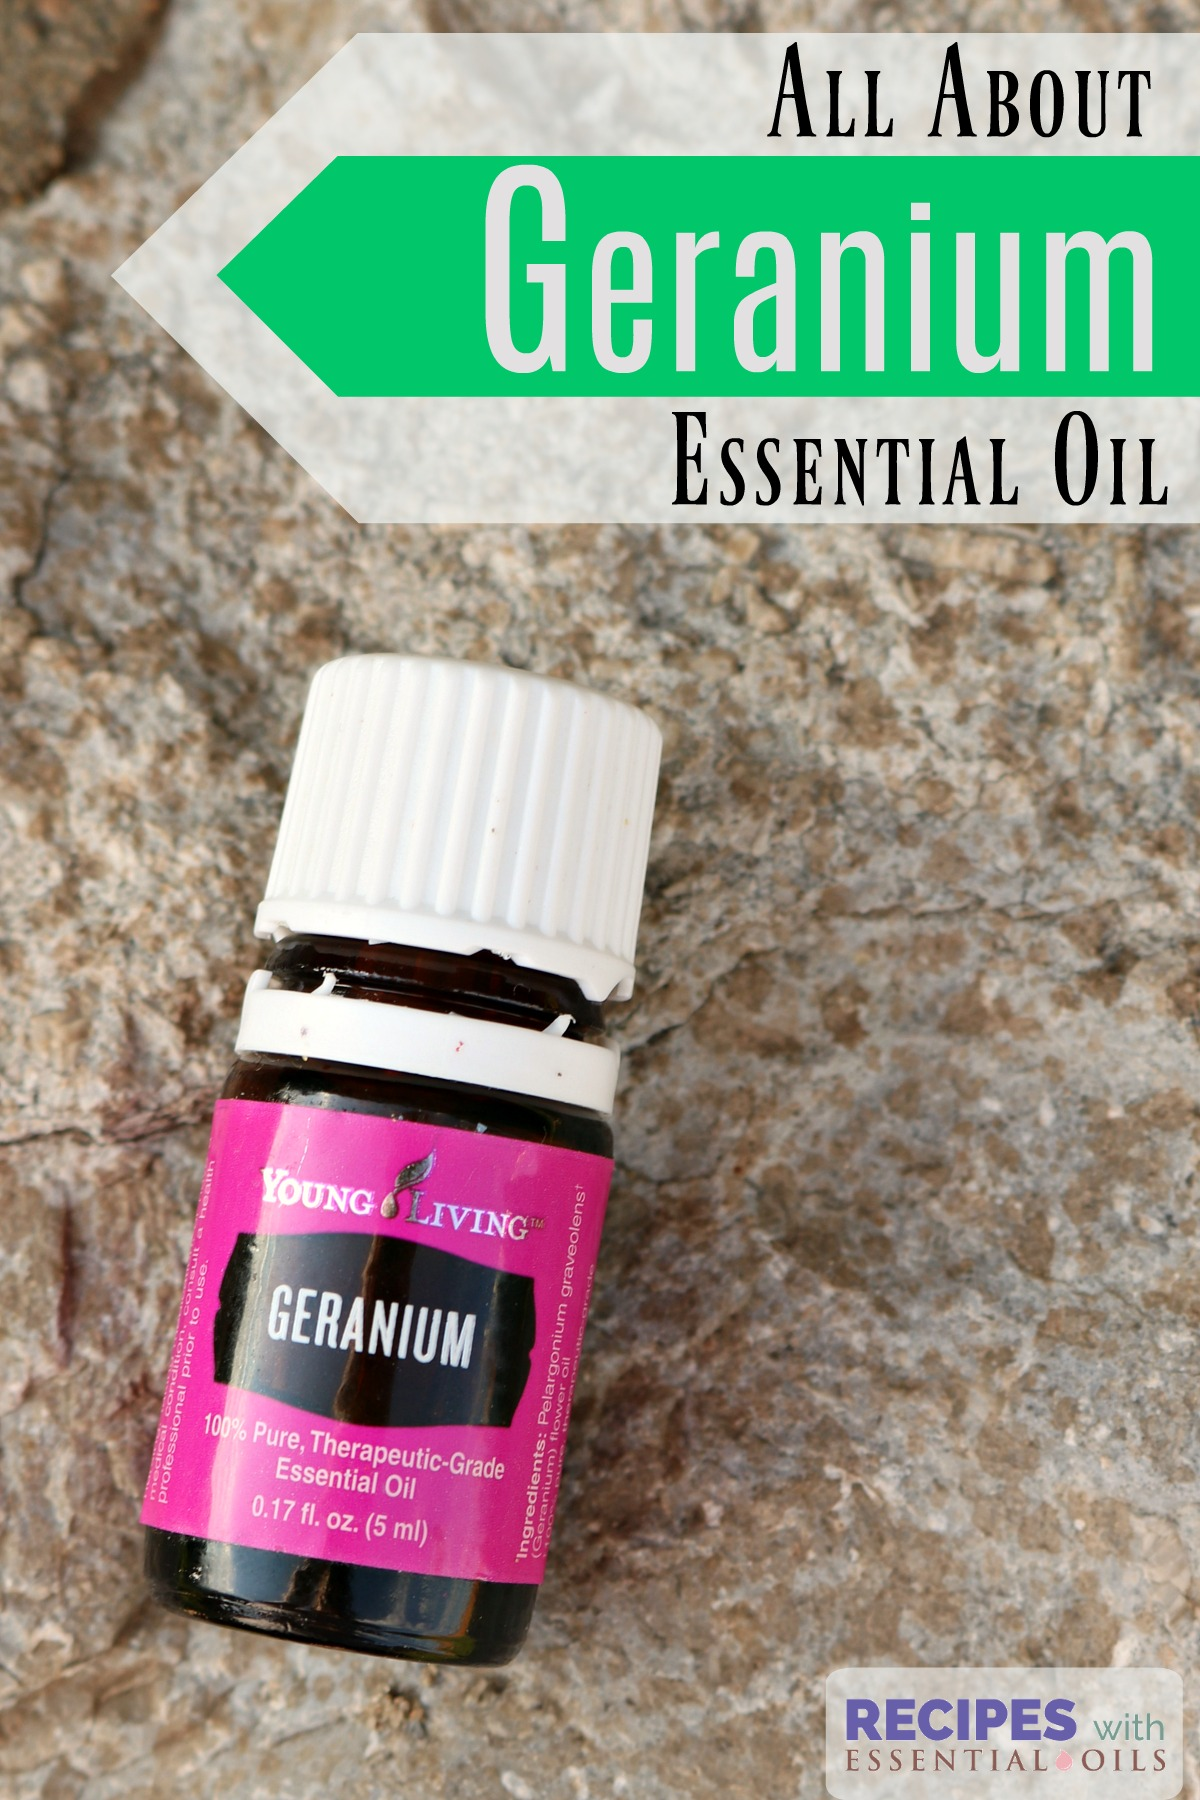 All about geranium essential oil